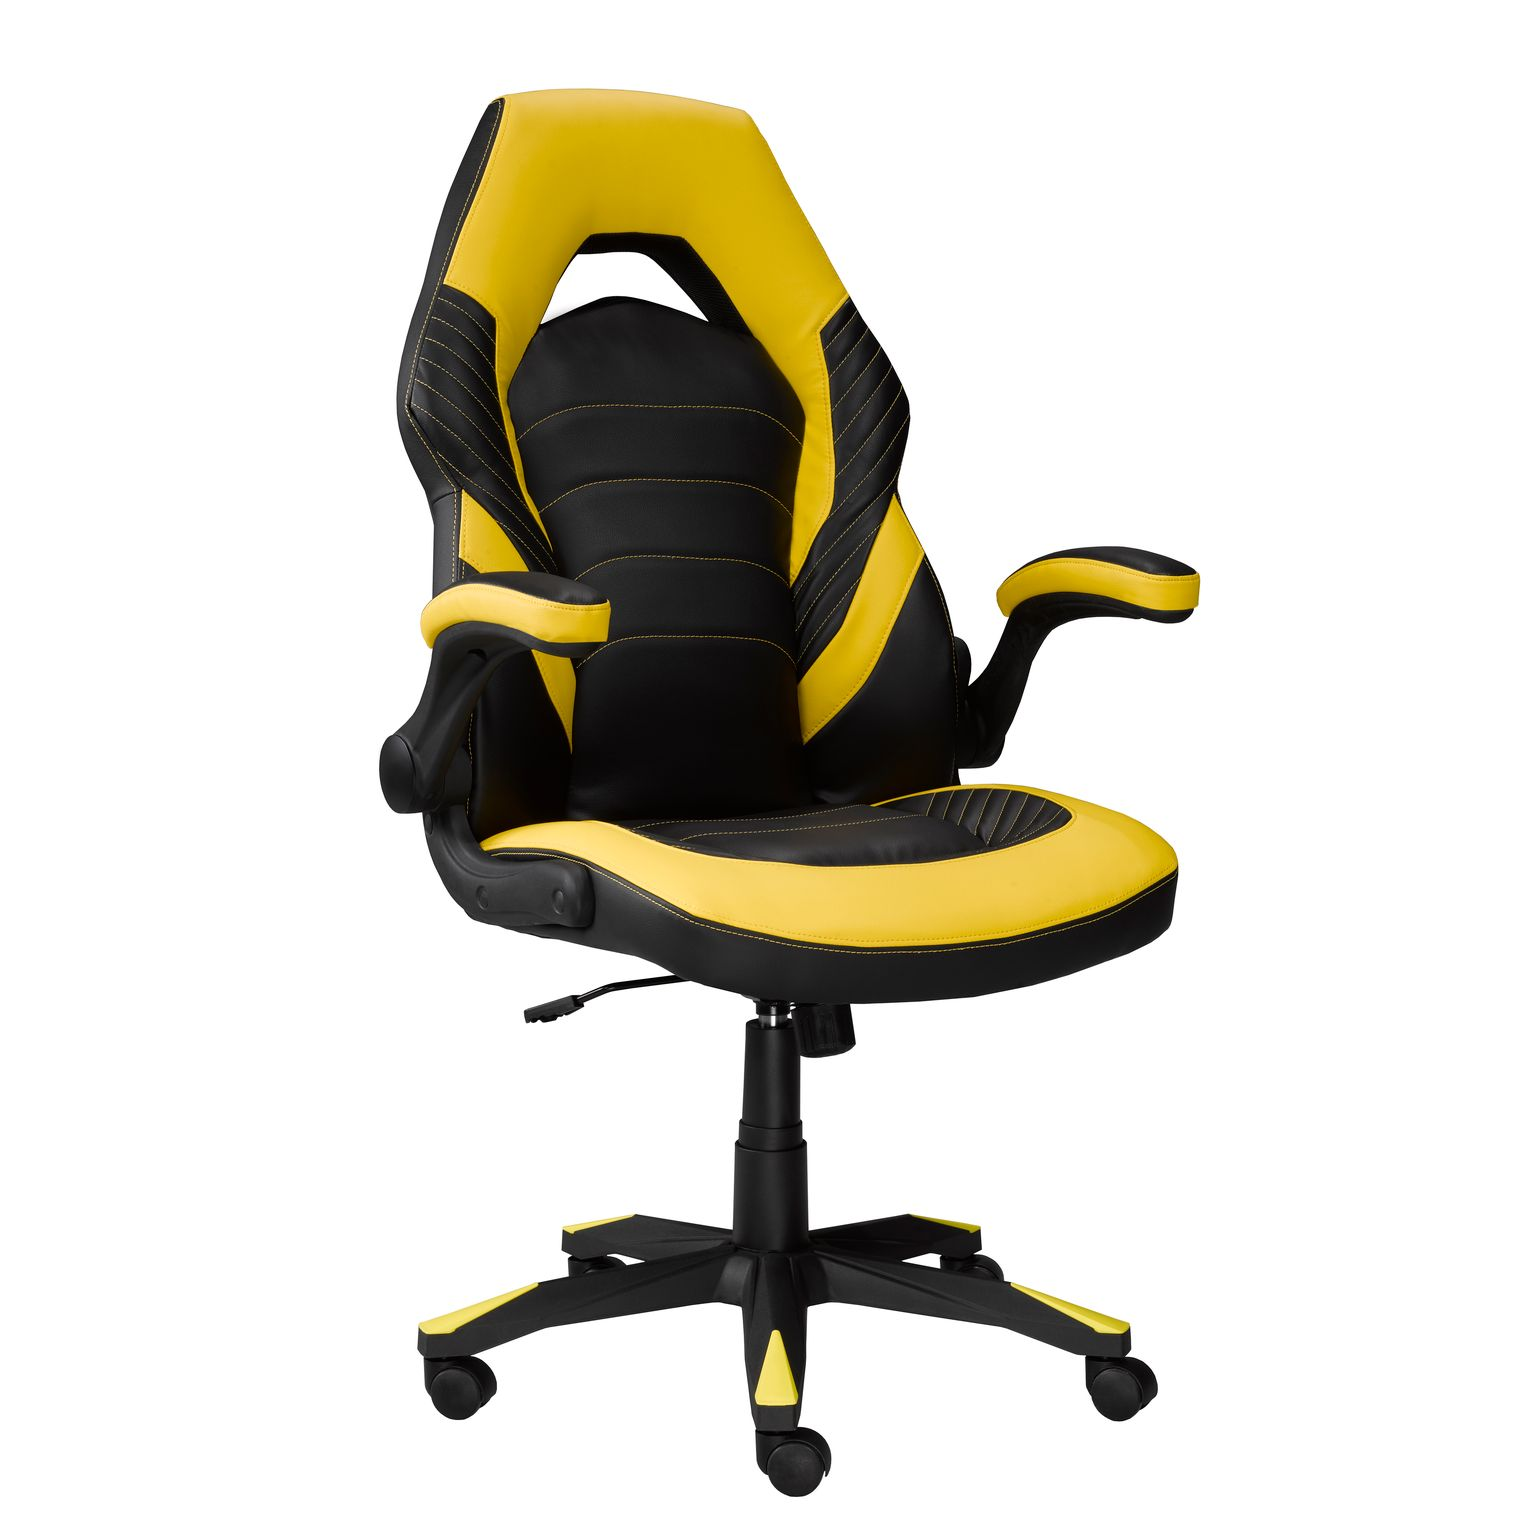 MIA OFFICE CHAIR YELLOW